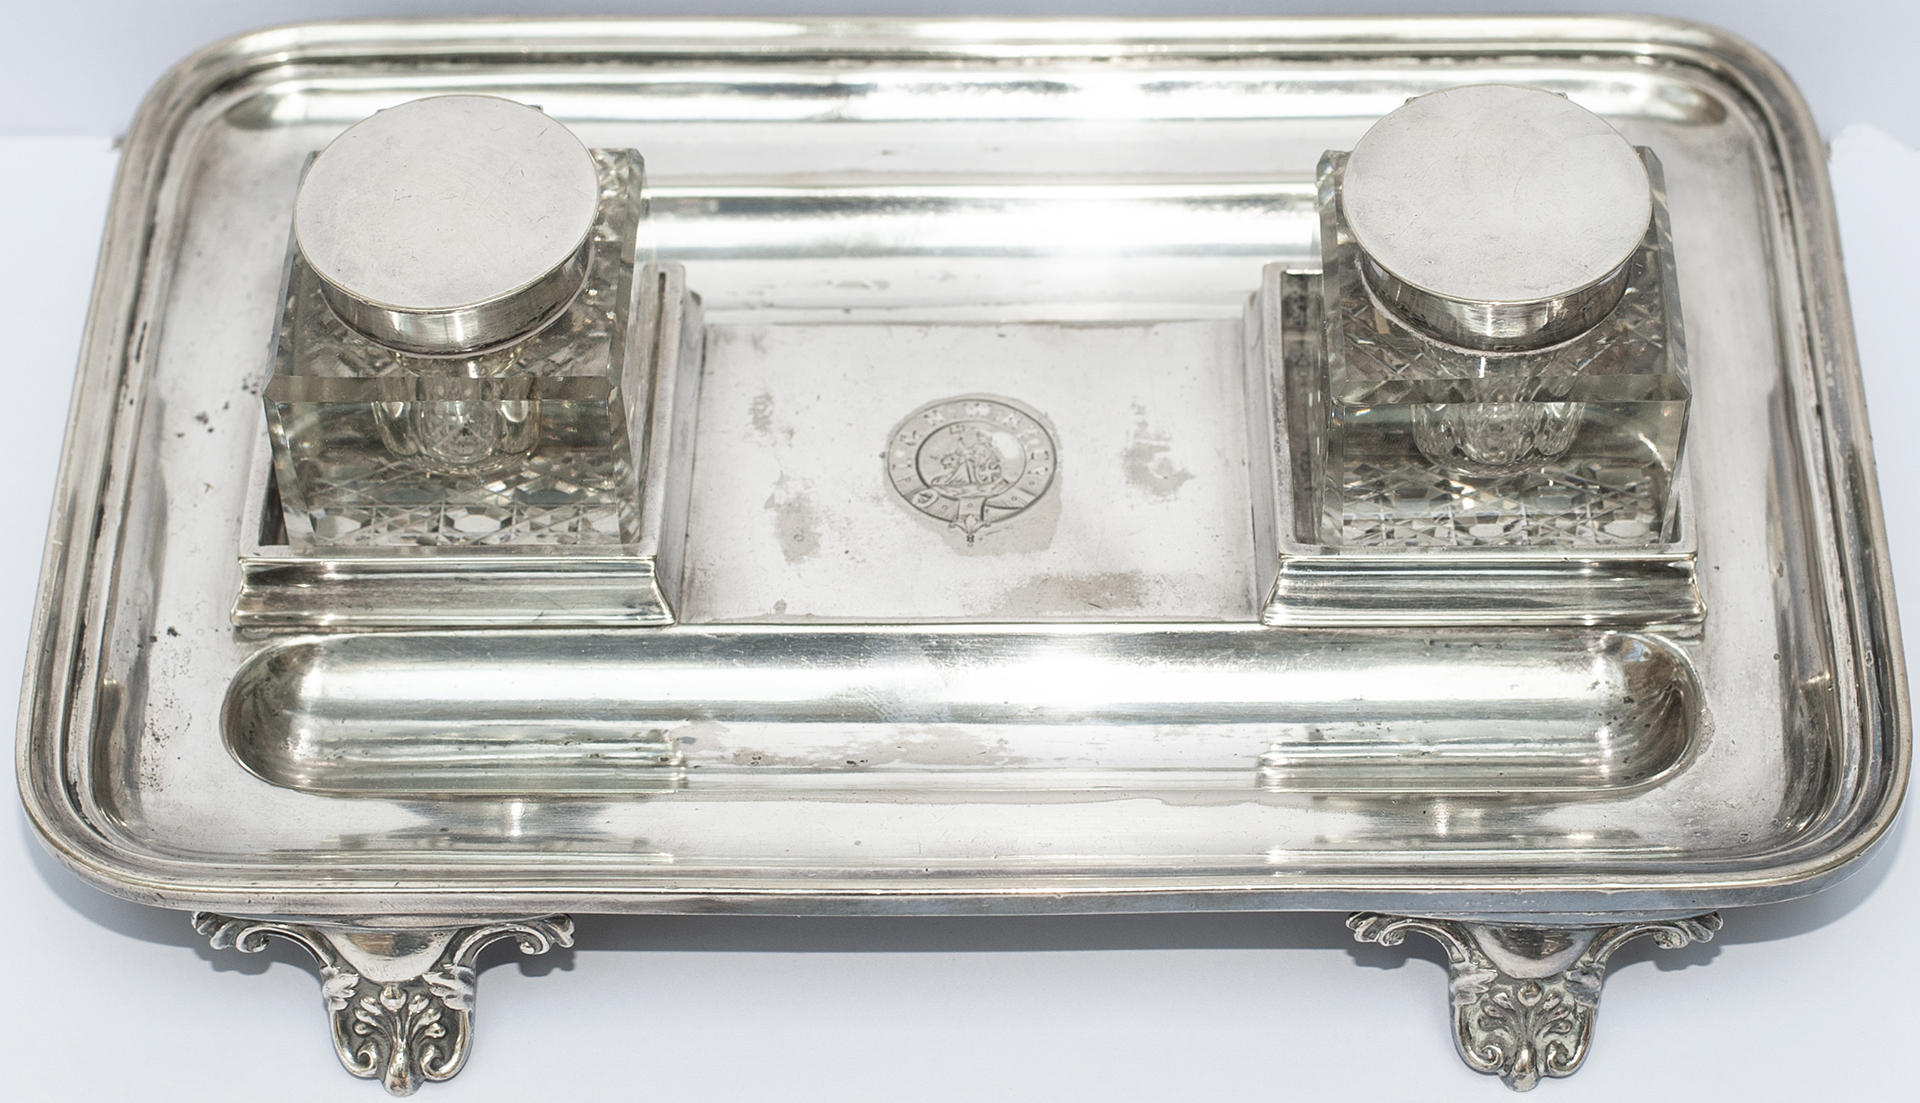 London & North Western Railway silverplate DESK PEN HOLDER AND INKWELL SET marked in the centre with